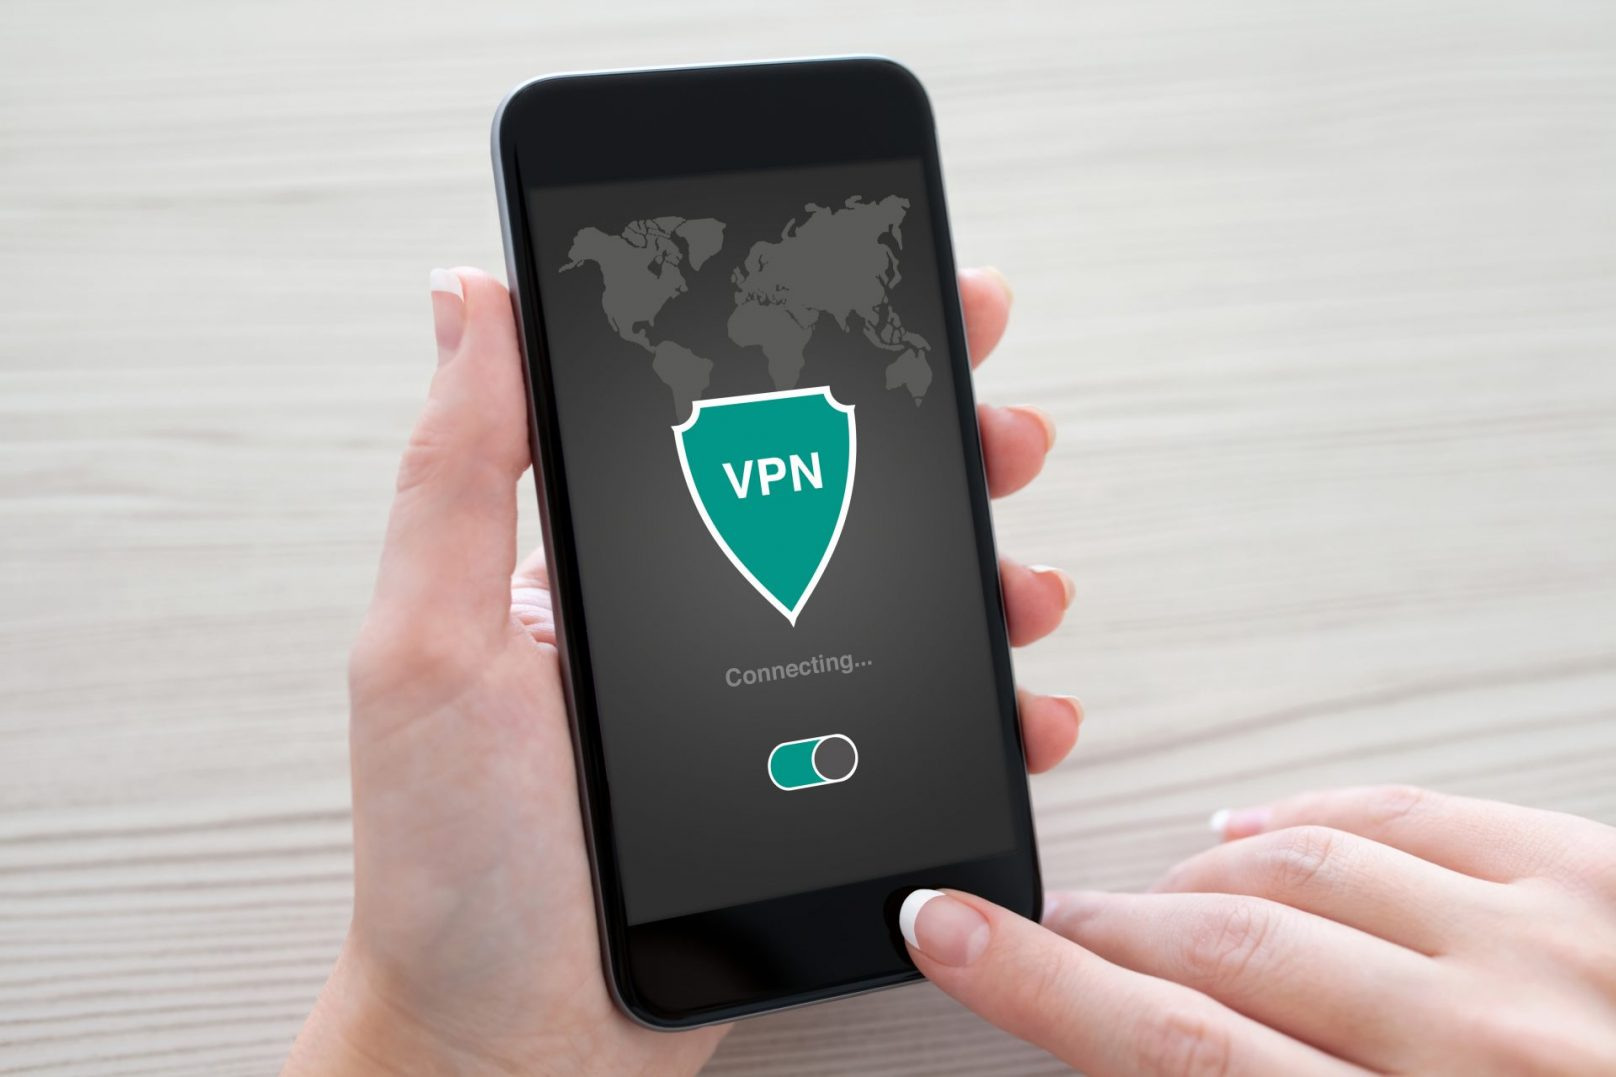 The best online security service by NordVPN in Netflix